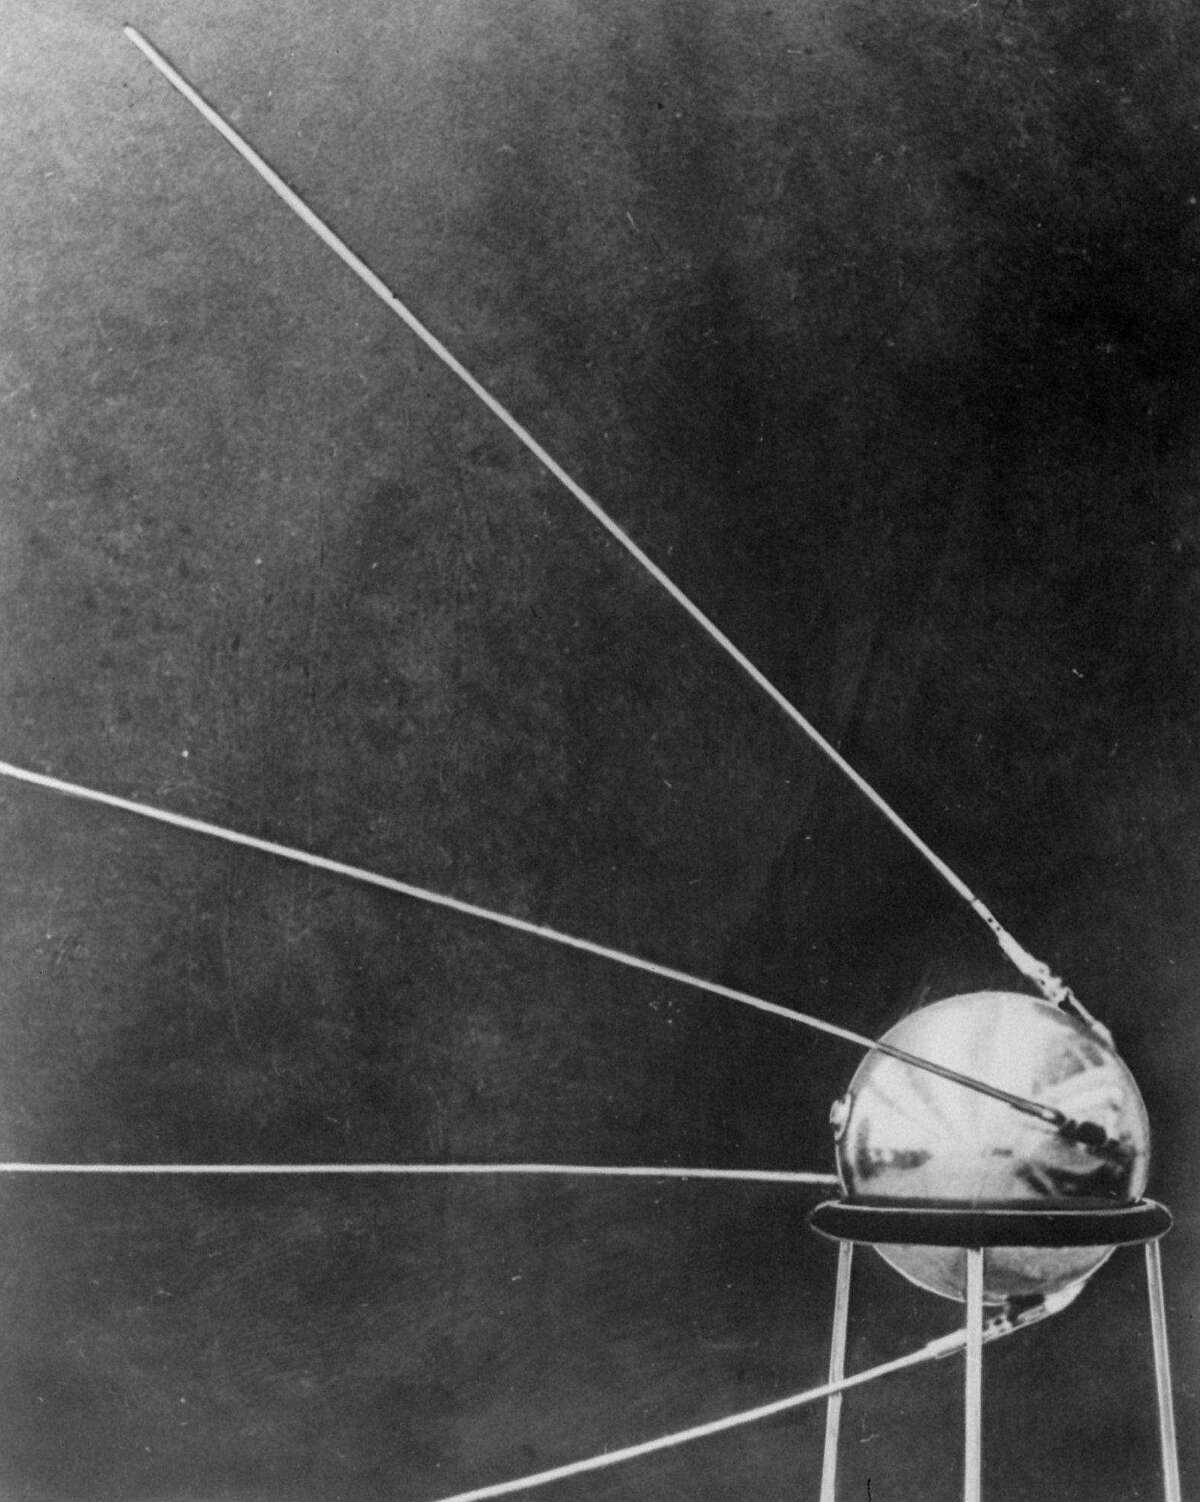 The first official picture of the Soviet satellite Sputnik I was issued in Moscow on Oct. 9, 1957, showing the satellite with its four antennas resting on a pedestal. Richard Schwab, a professor of educational leadership at the University of Connecticut, said the coronavirus pandemic's impact on digital education may be similar to what Sputnik was to science education in the 1950's.